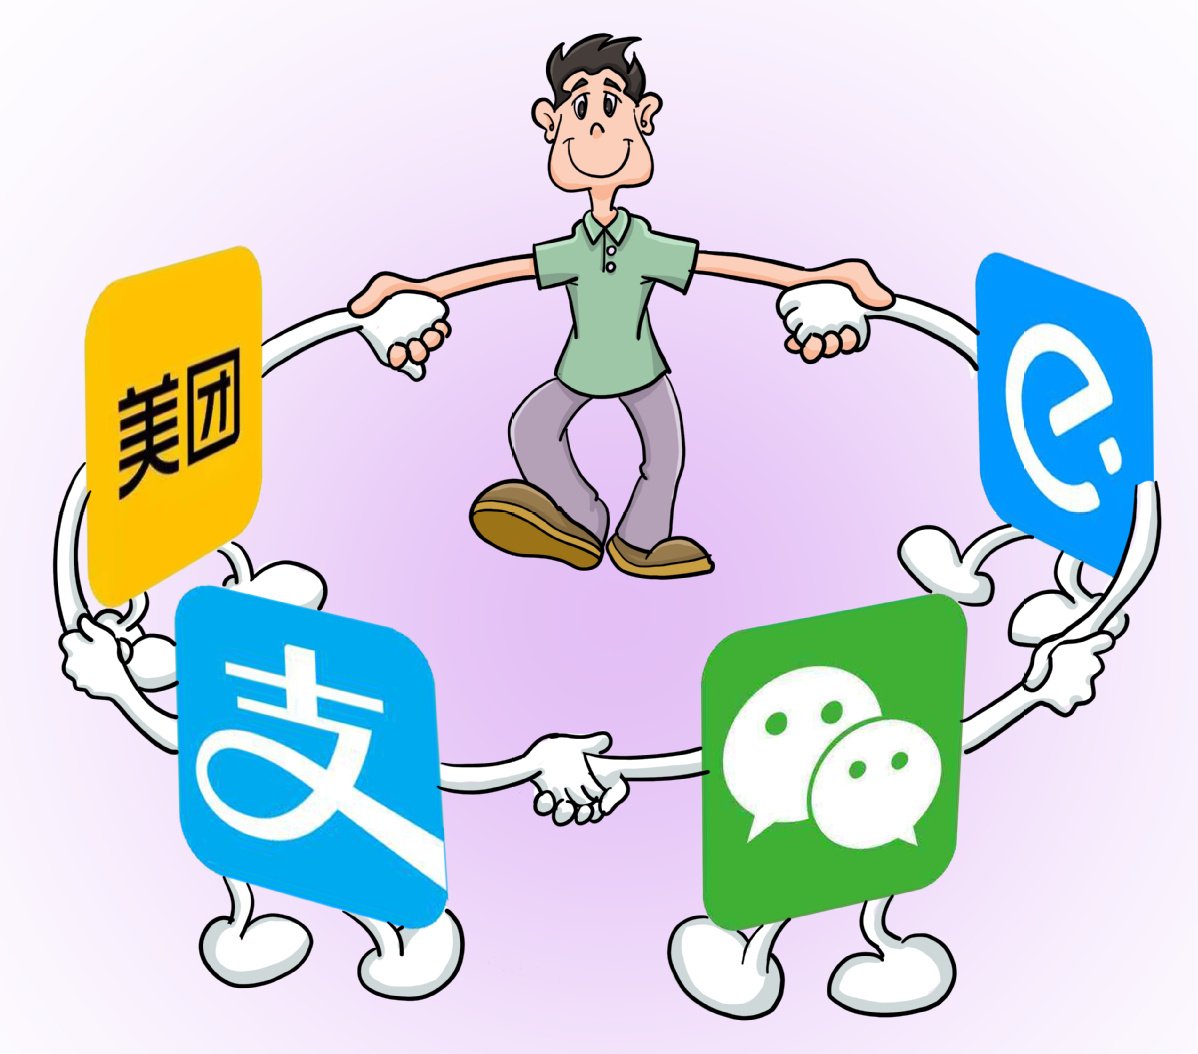 Internet firms told to stop monopolizing trade